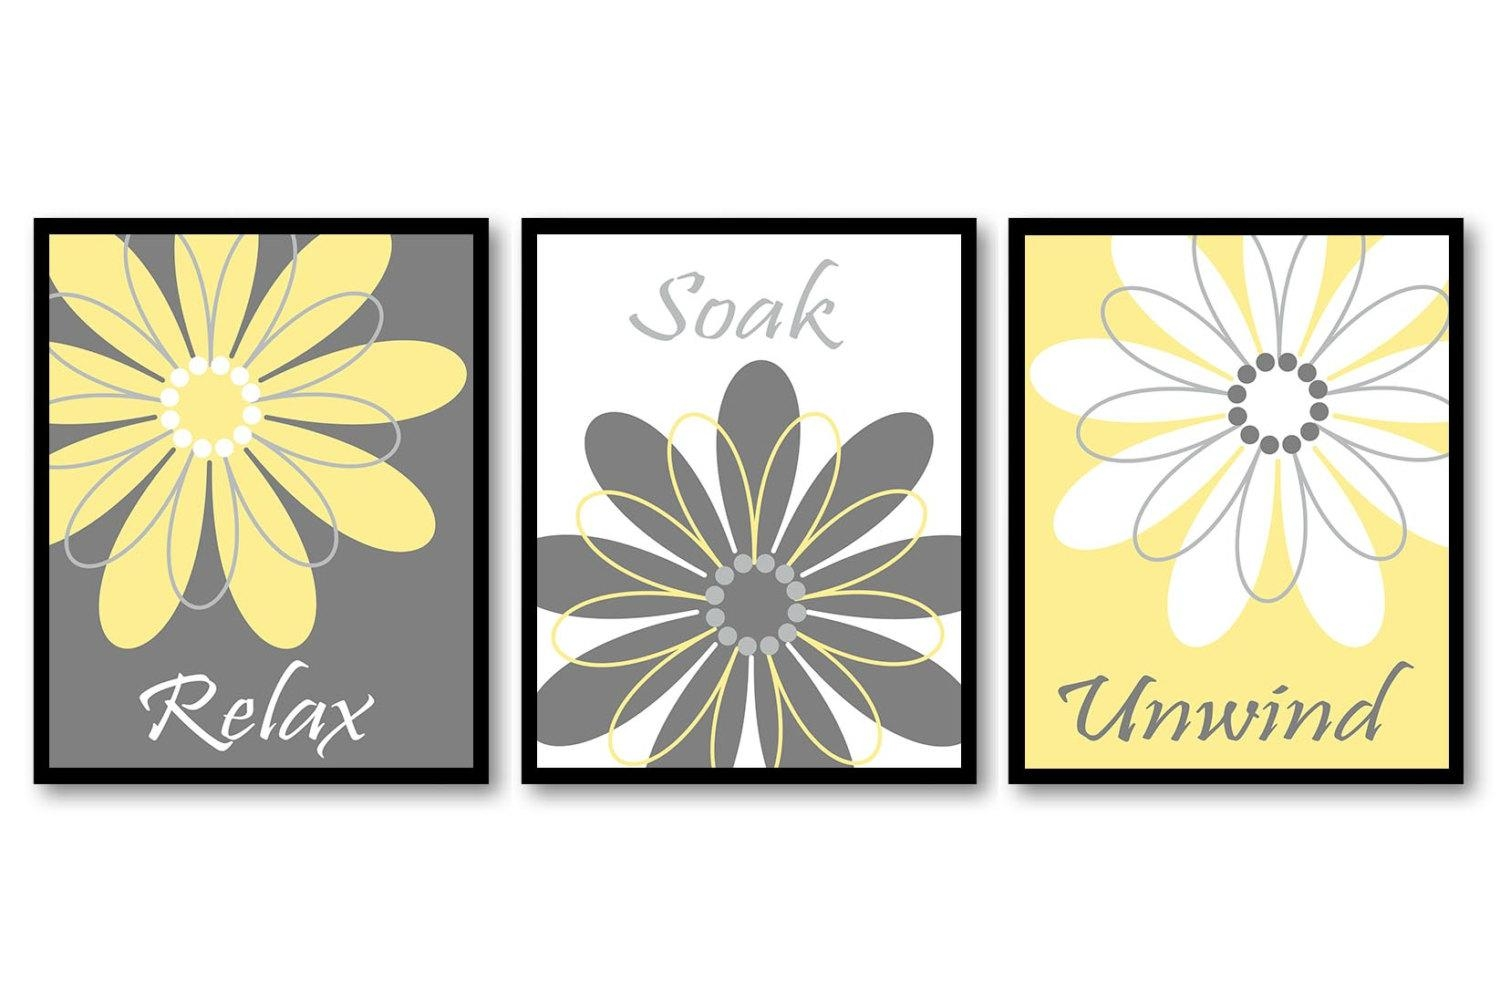 Bathroom Wall Art Yellow Grey Gray White Daisy Flower Print Regarding Gray And White Wall Art (Image 3 of 20)